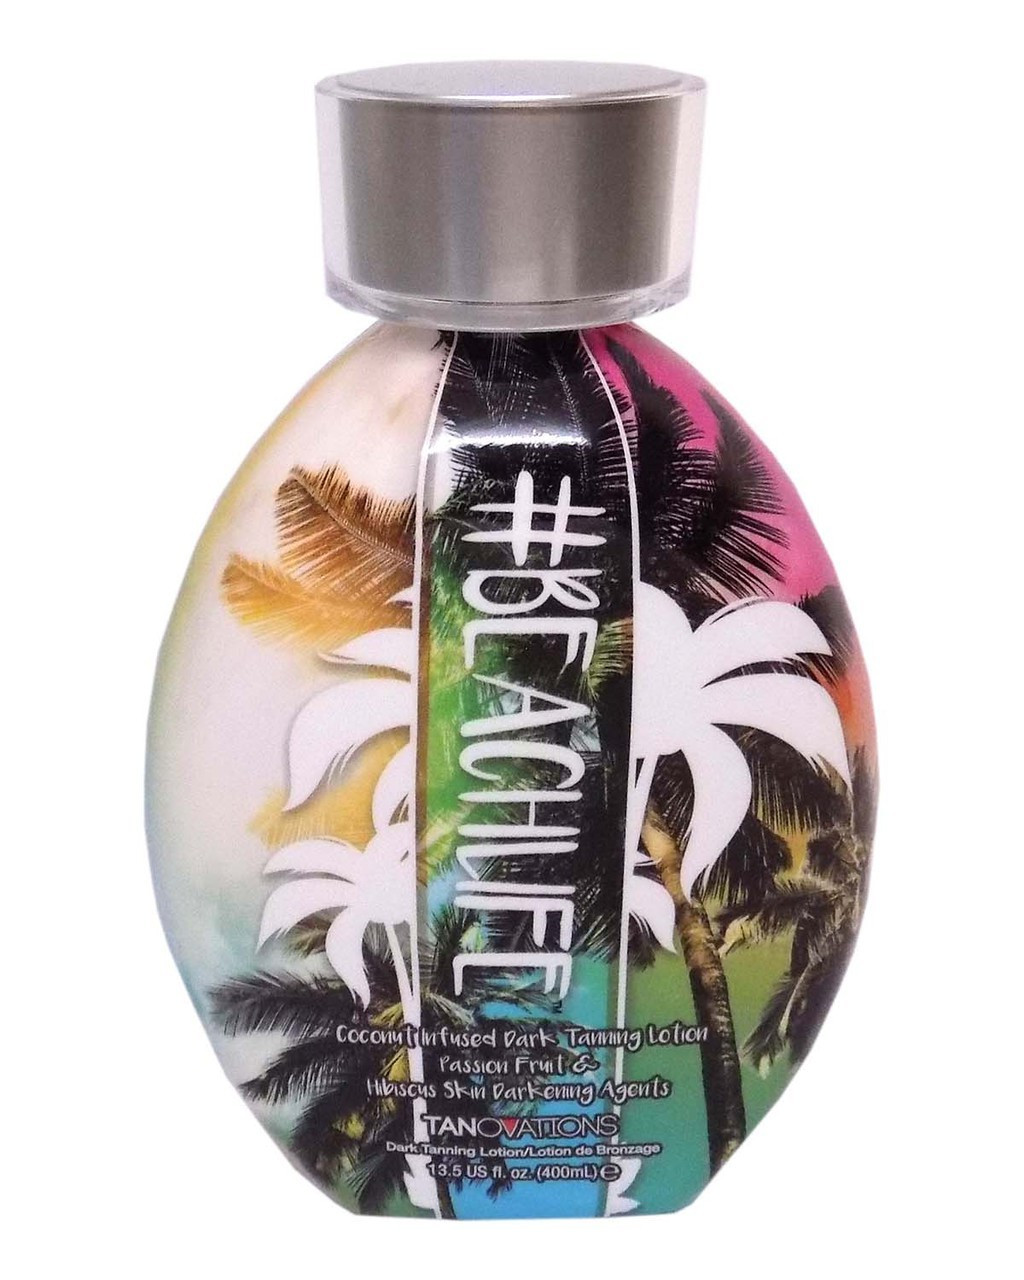 #Beachlife Intensifier 13.5oz Ed Hardy